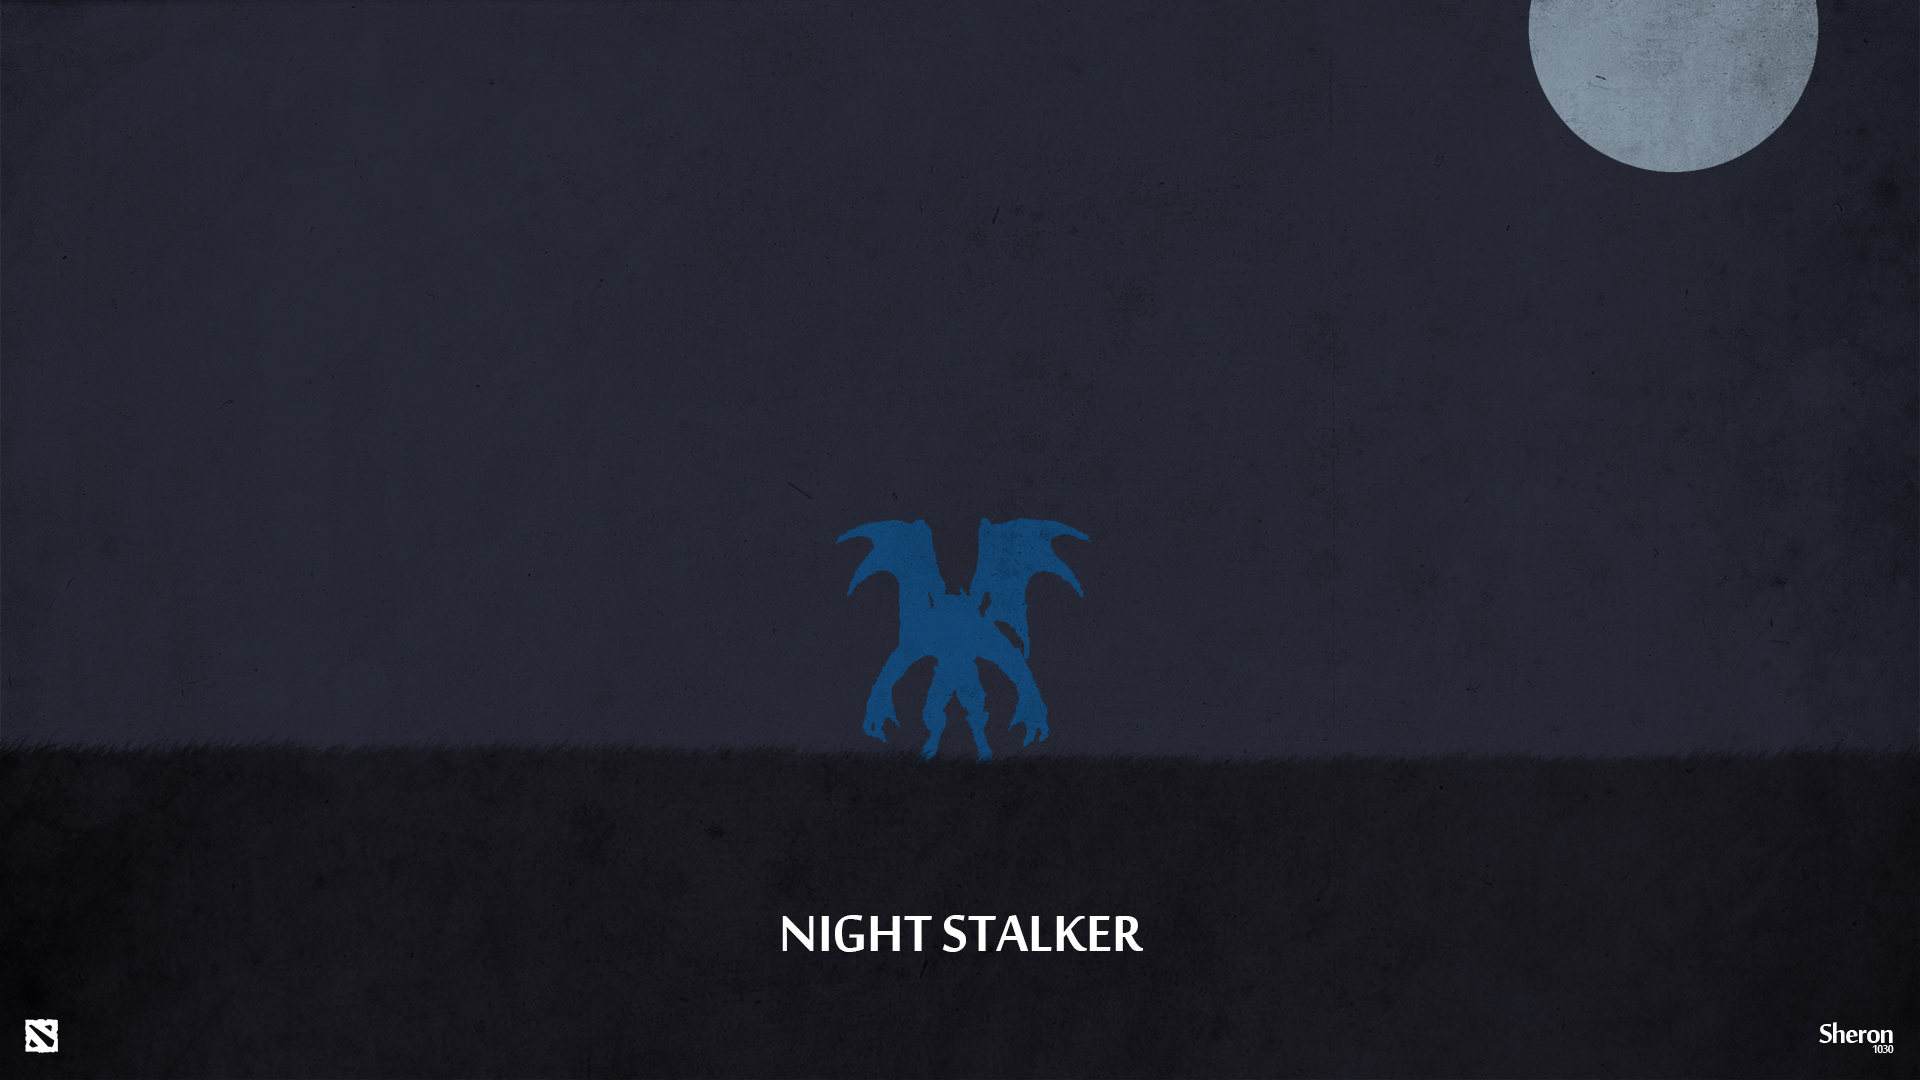 Dota 2 - Night Stalker Wallpaper by sheron1030